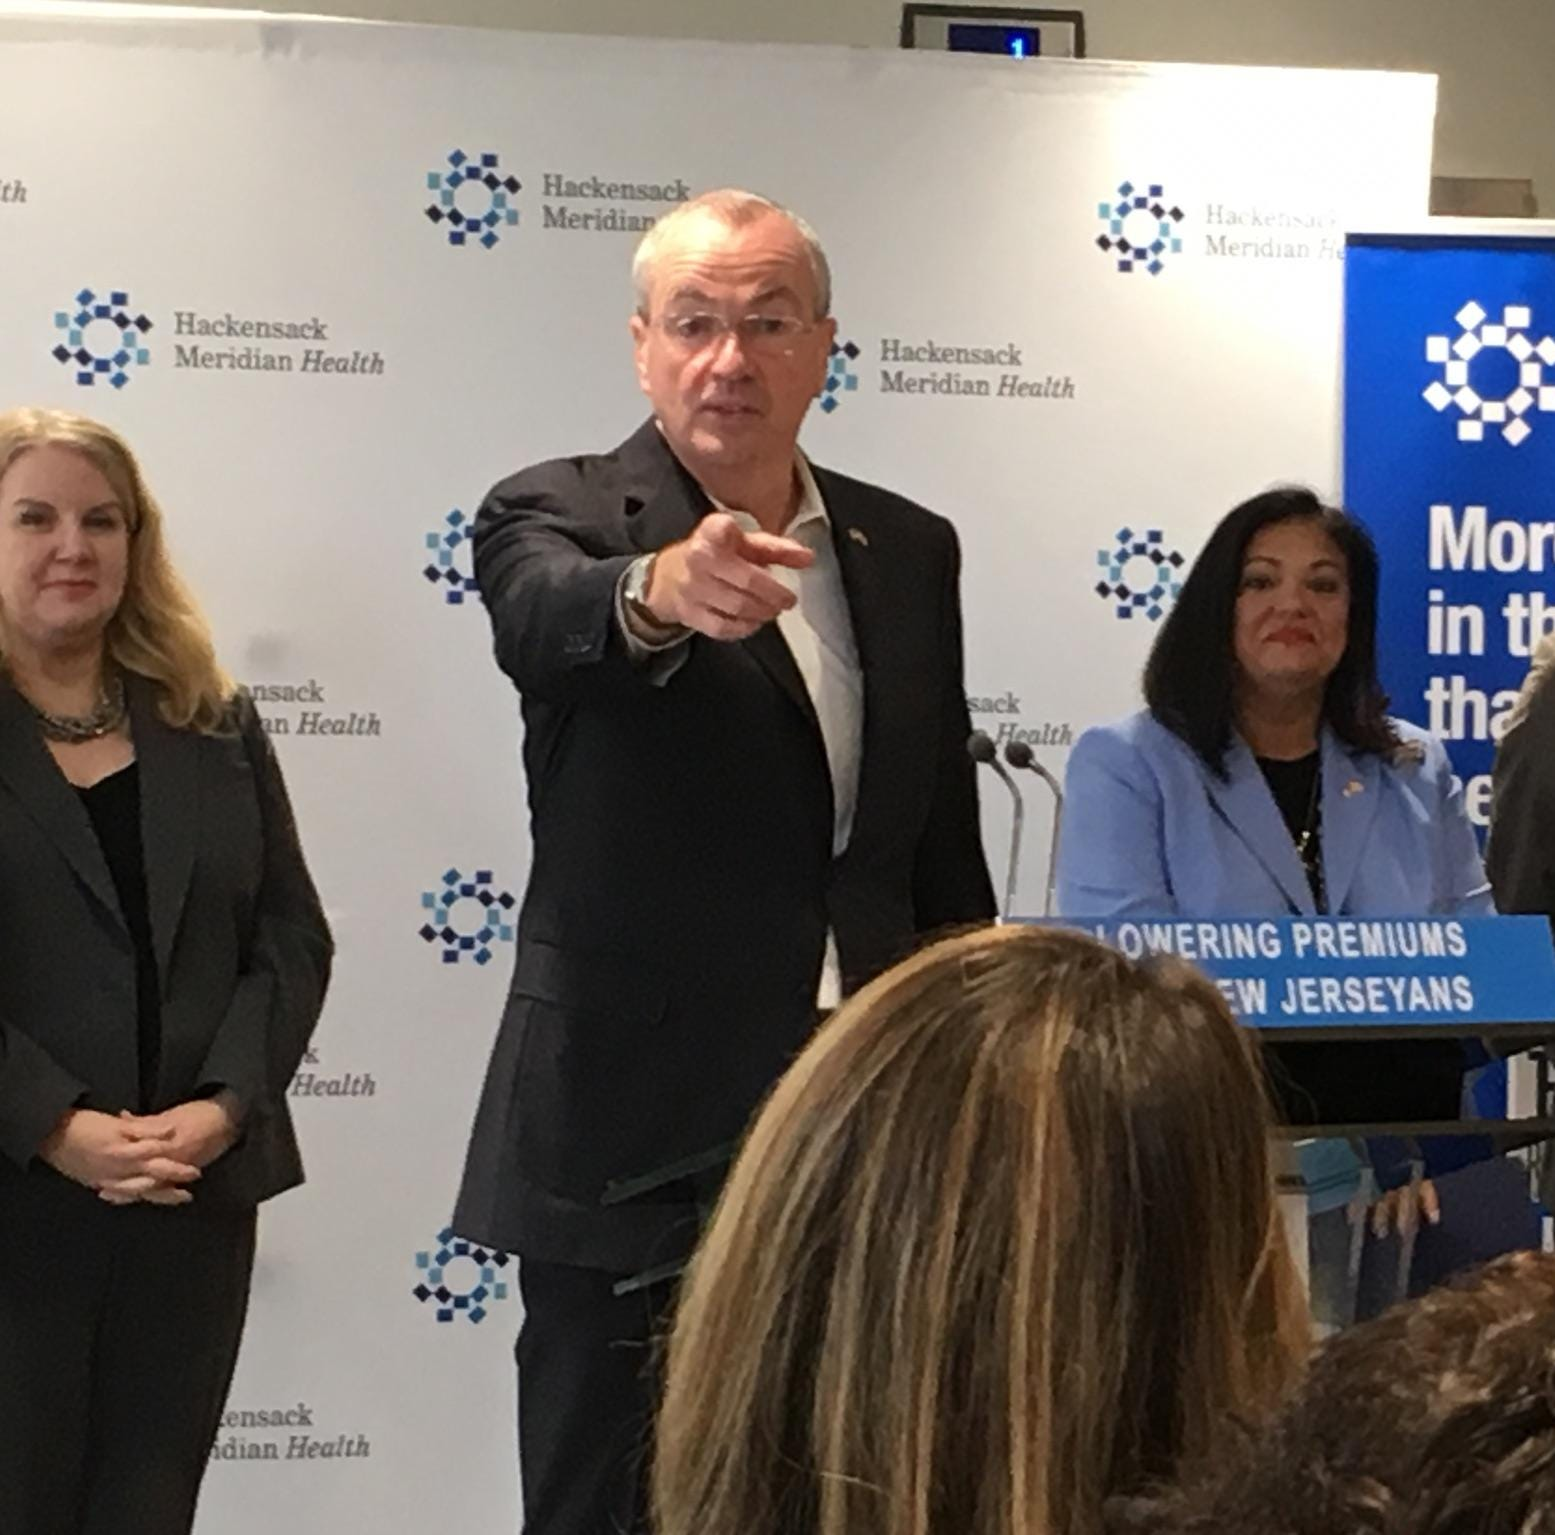 Phil Murphy: NJ getting its own Obamacare marketplace to guard against Trump